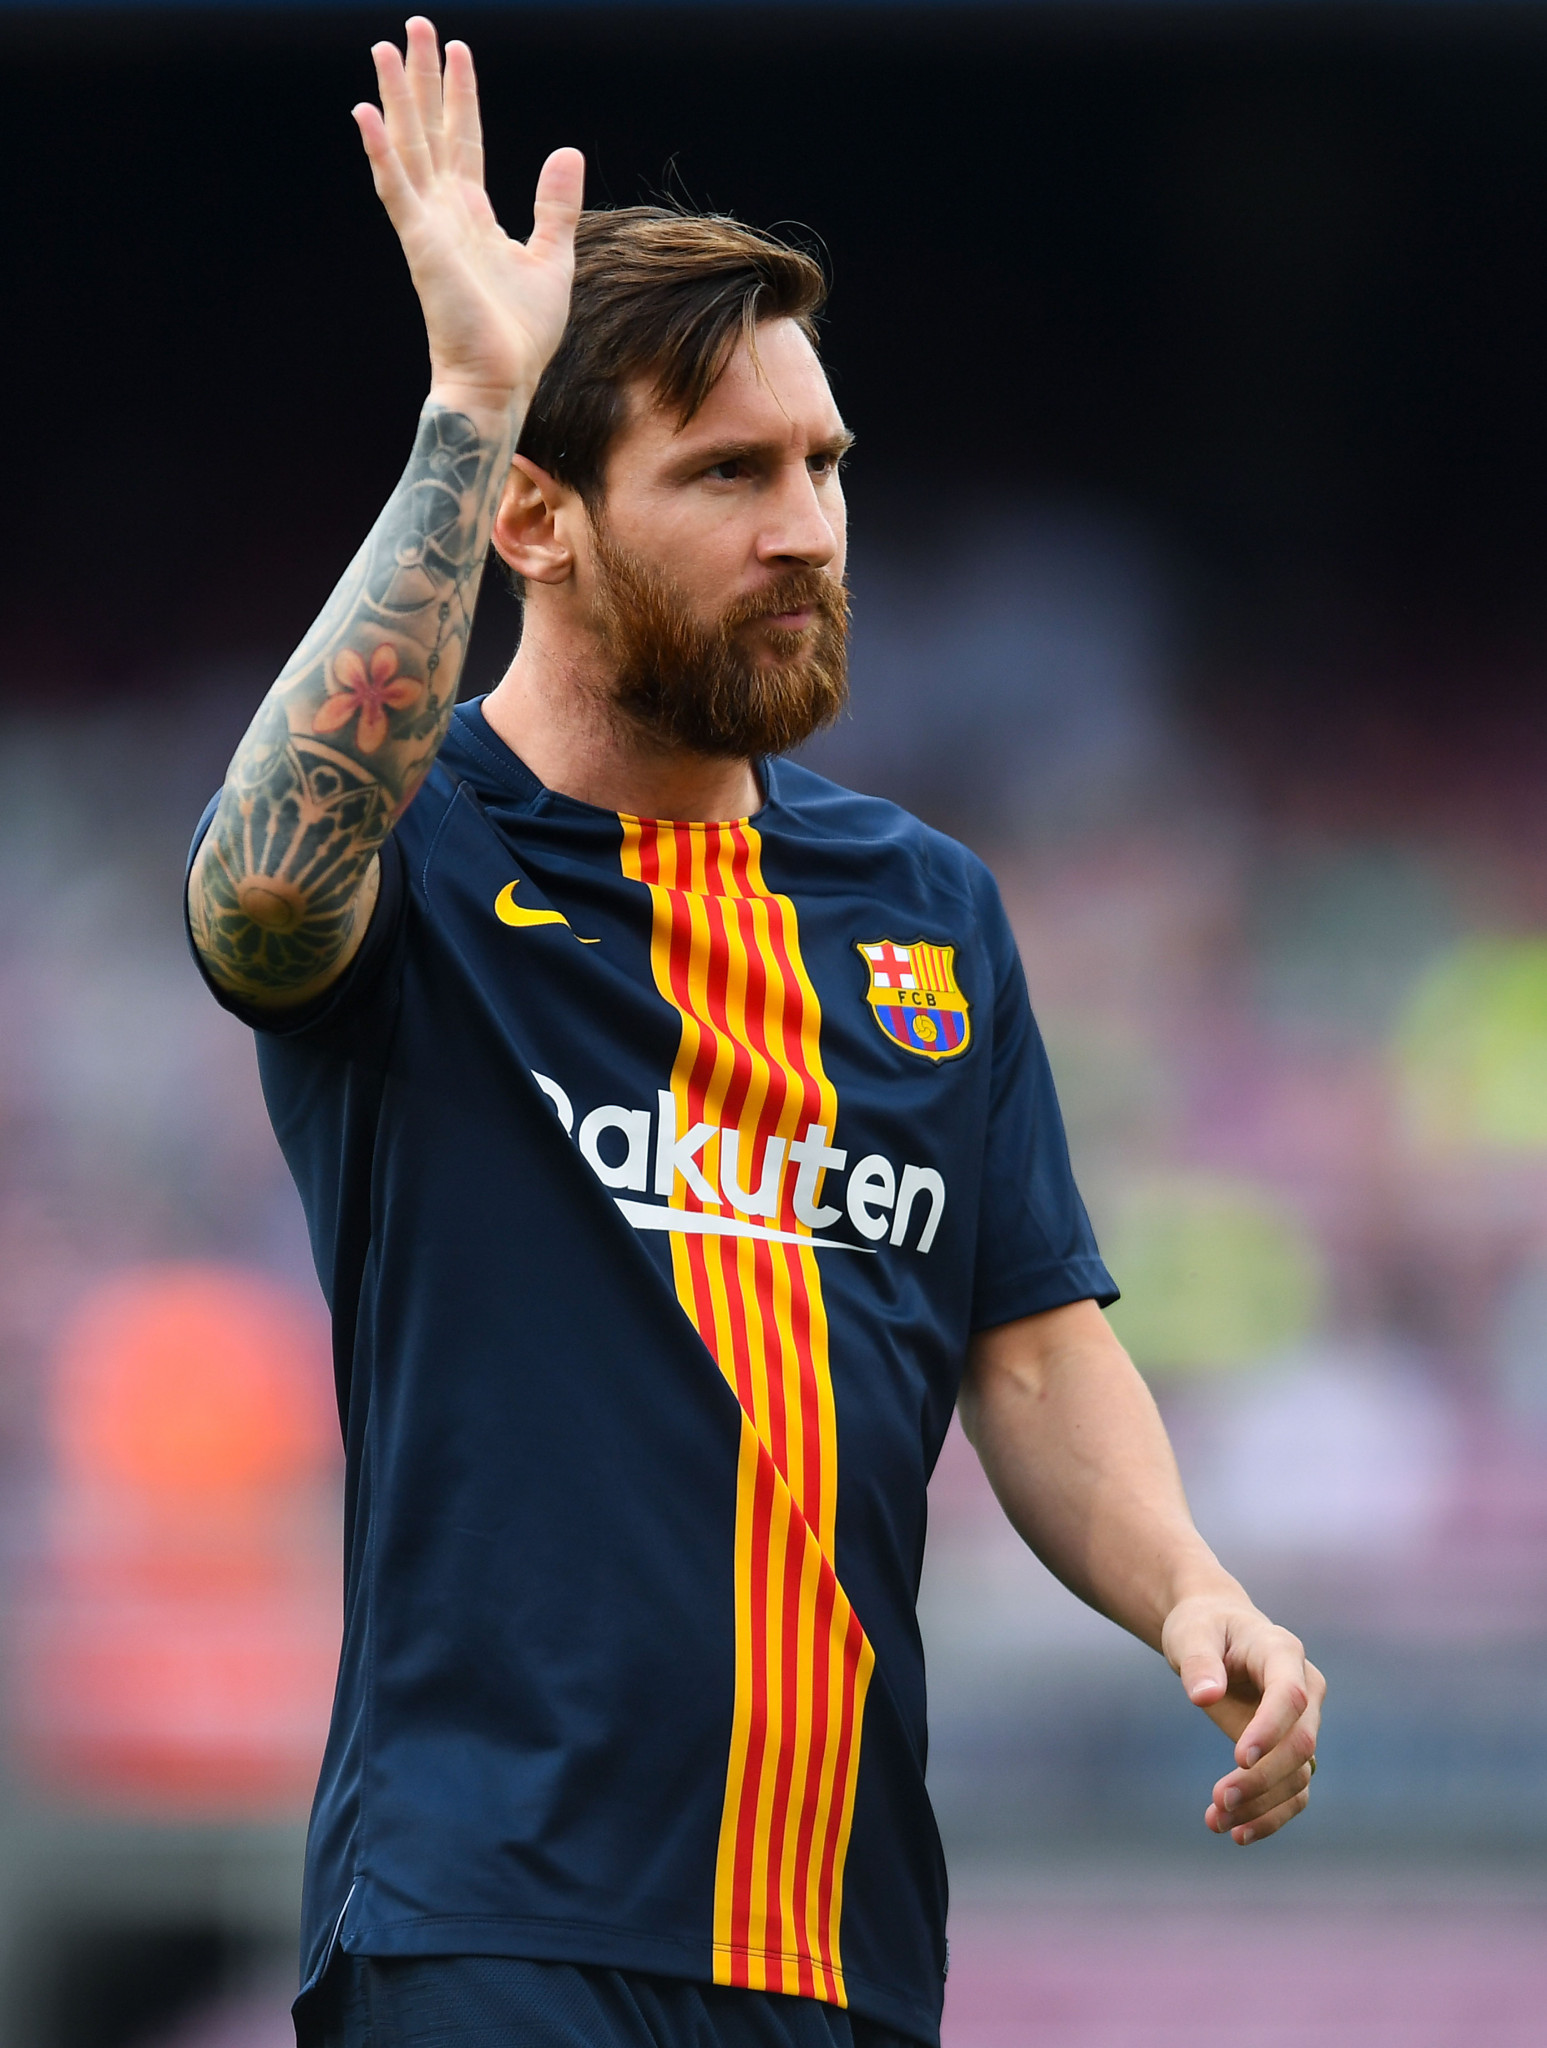 Lionel Messi has been nominated in the top three of FIFA's male player of the year for the past 11 years but misses out this time ©Getty Images